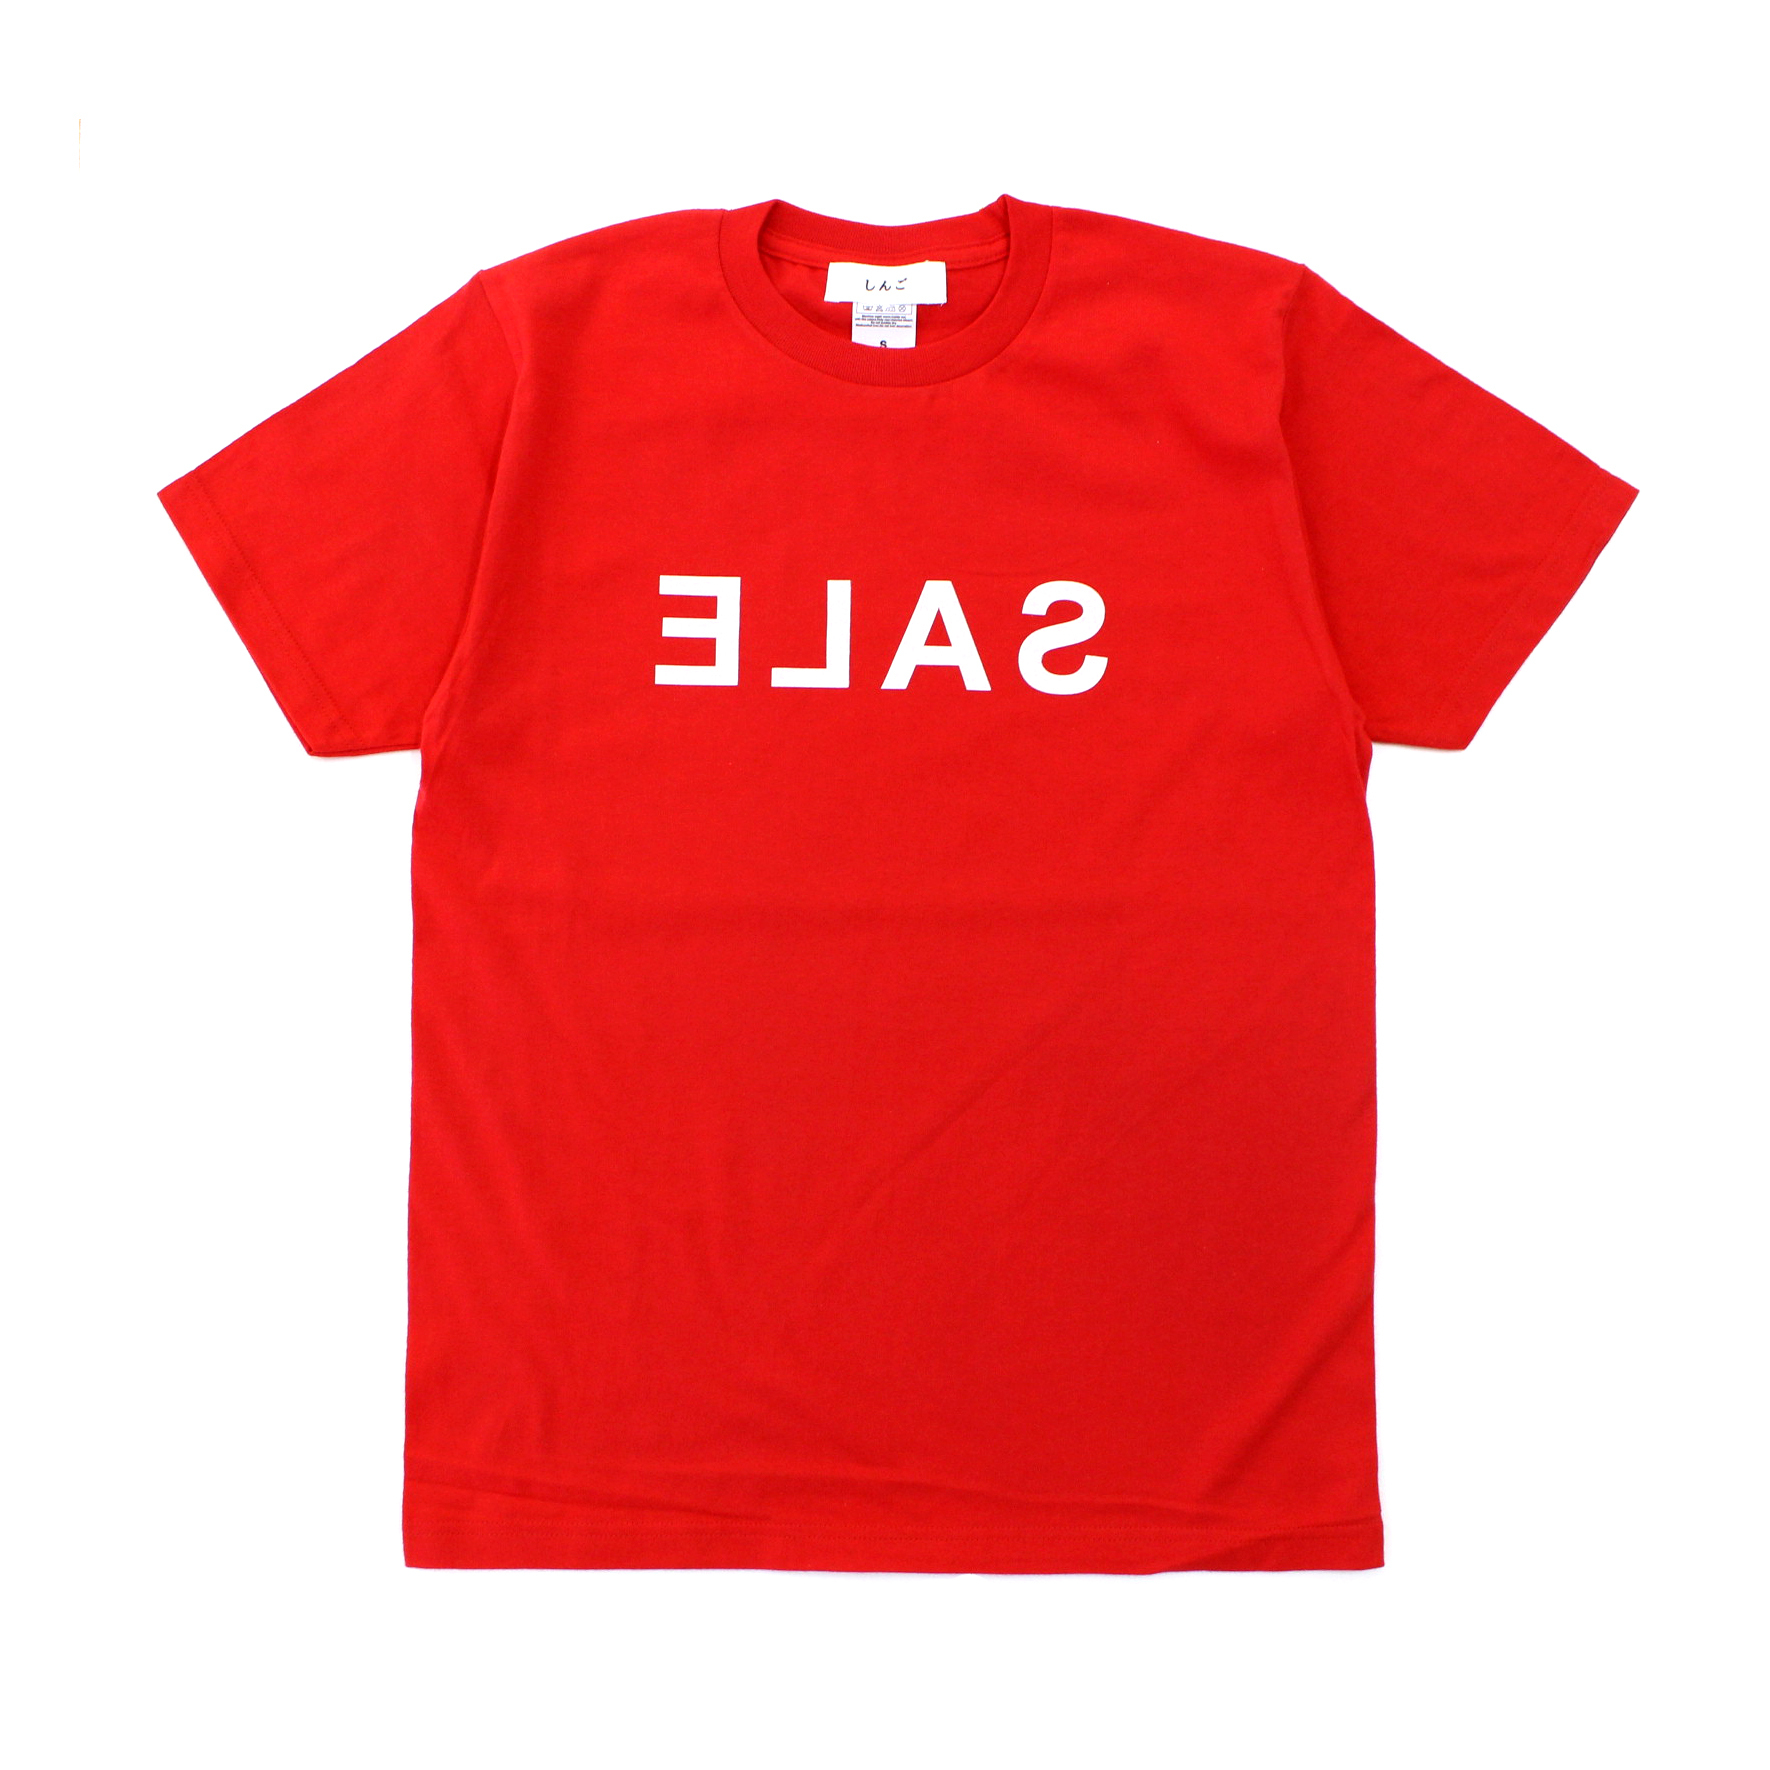 SALE Tシャツ(Red)